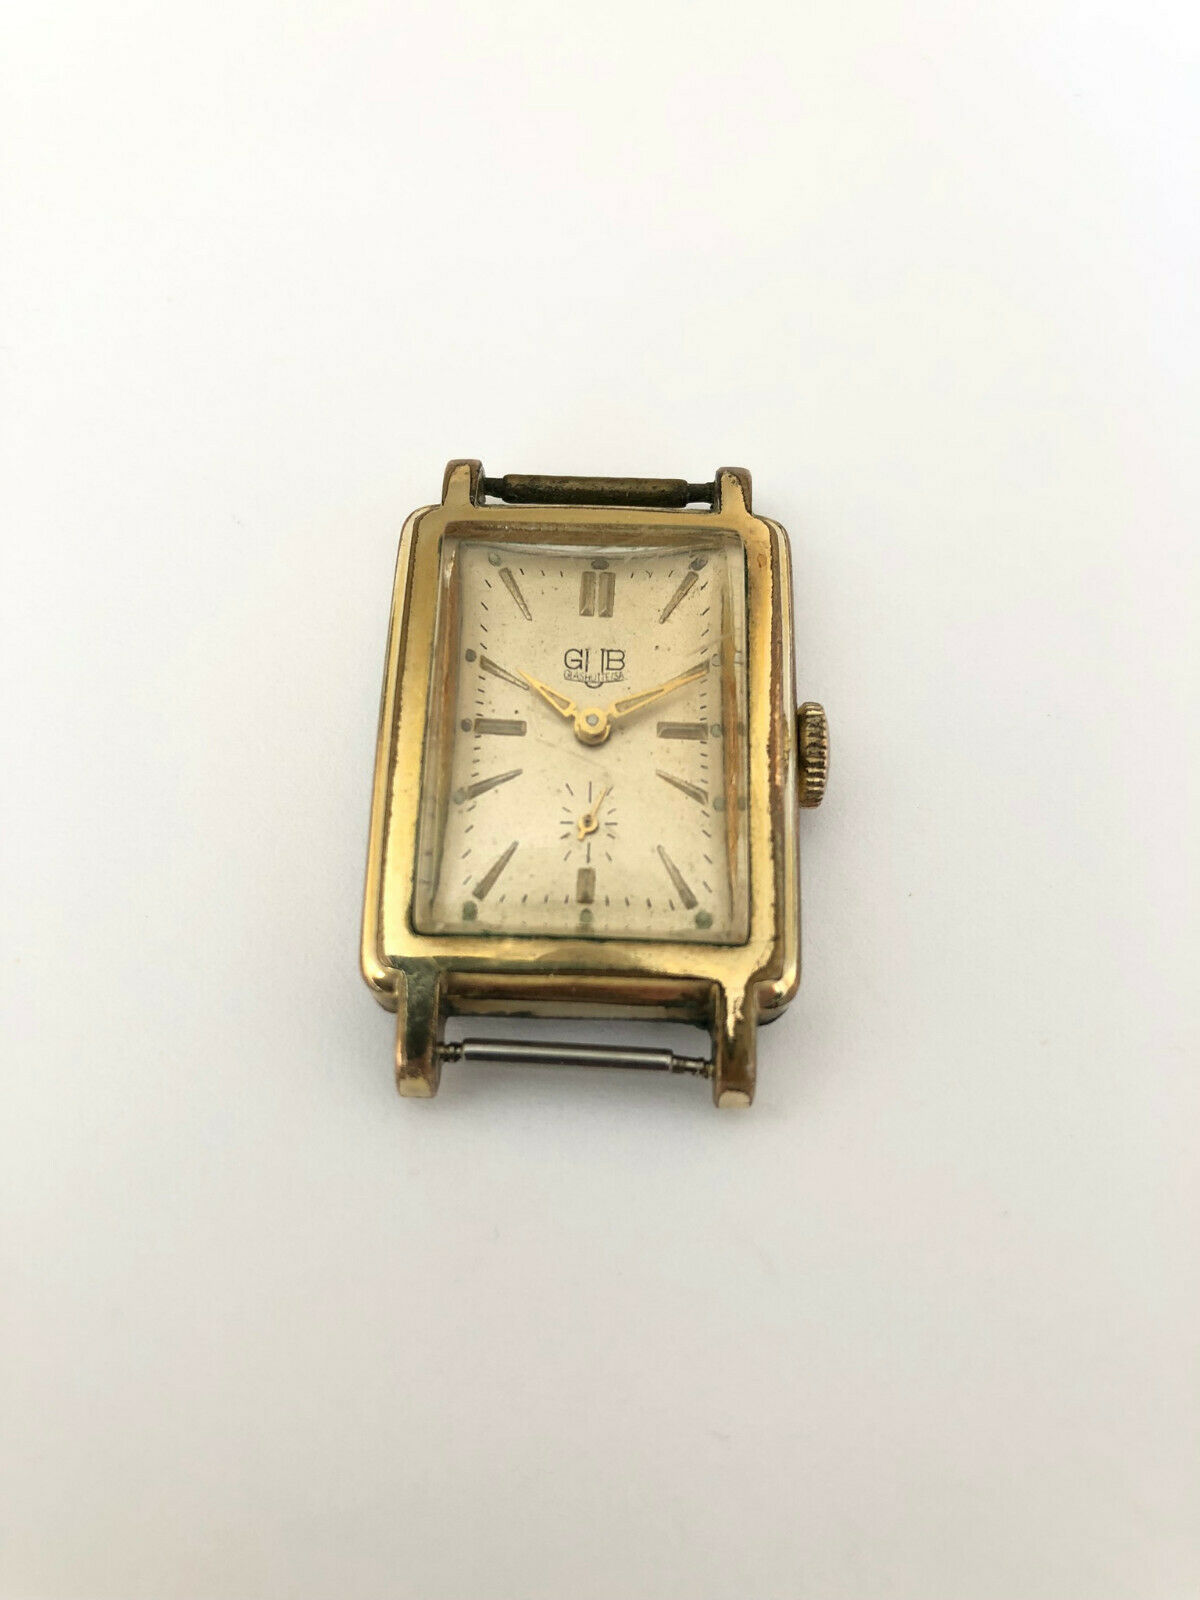 Primary image for Vnt Very Rare GUB GLASHUTTE Rectangular cal.62.2 Gold plated Germany Watch